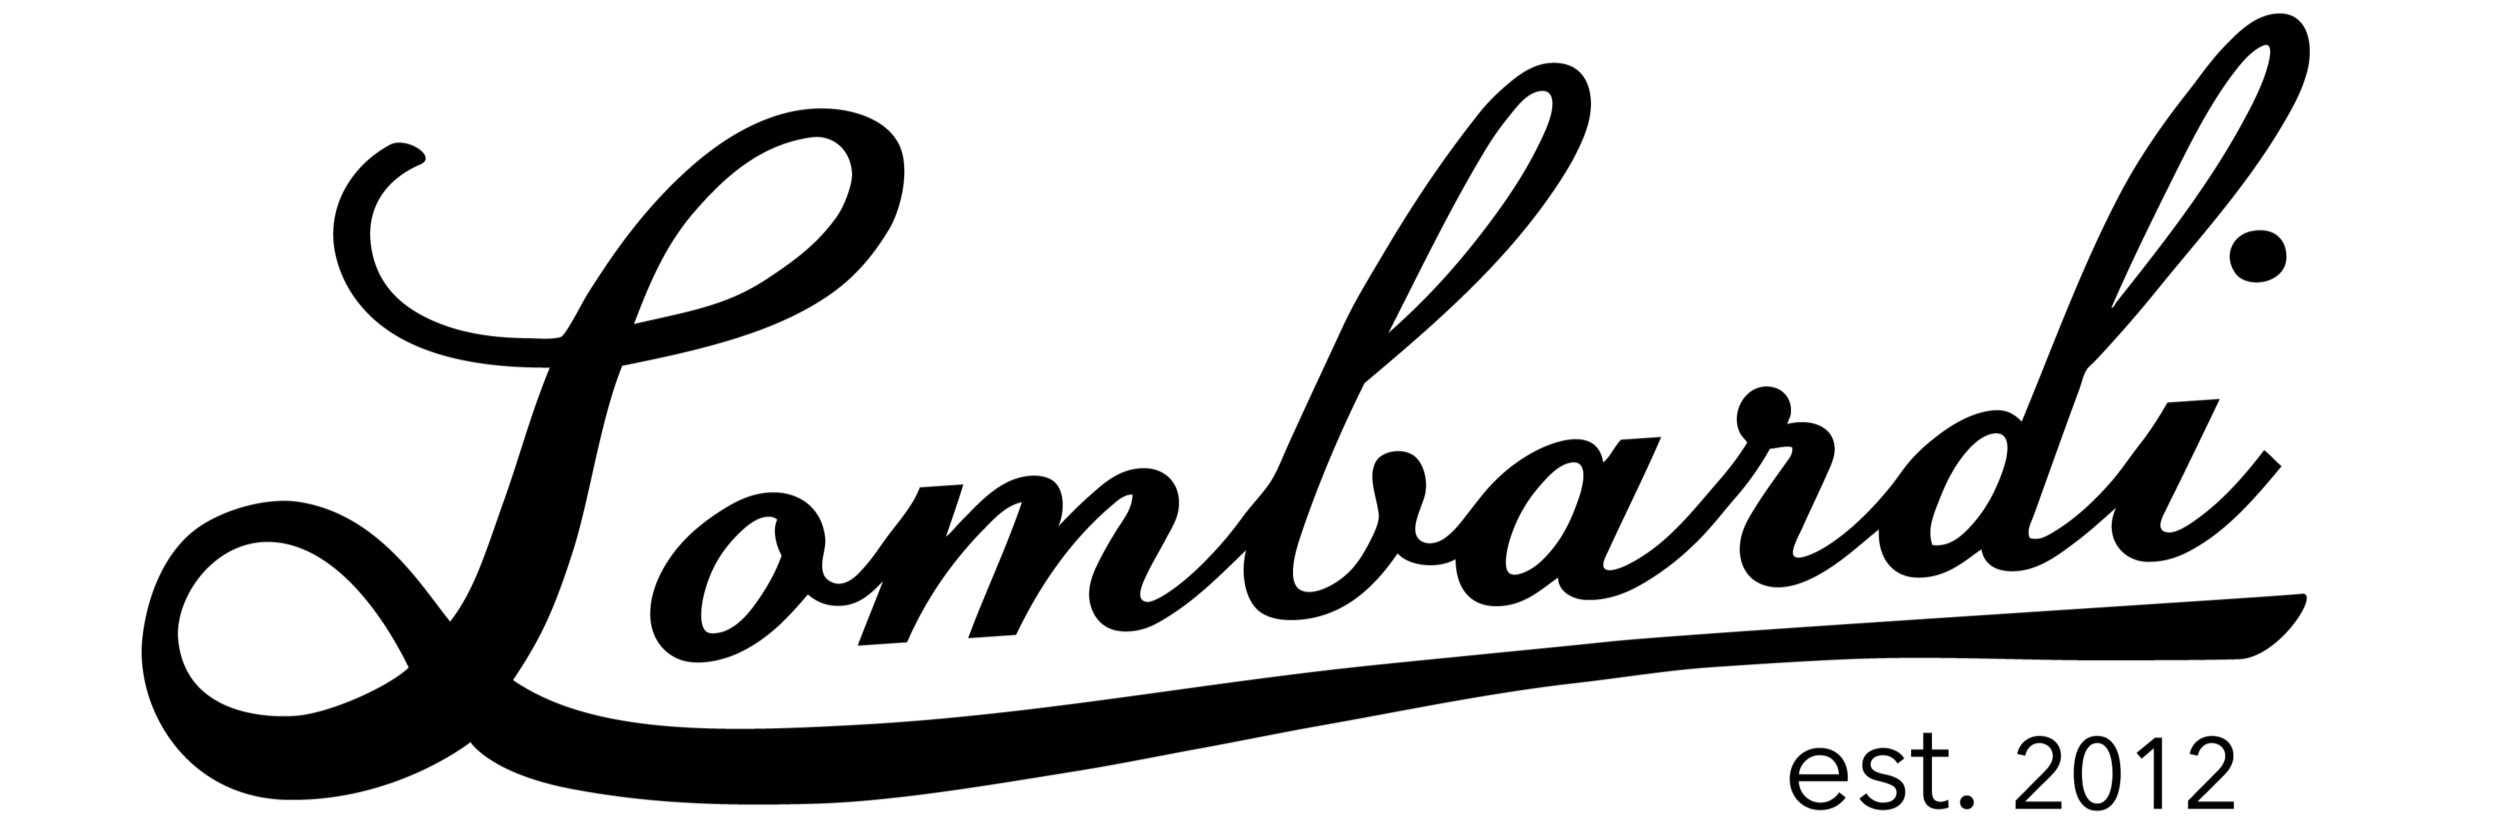 Lombardi Leather